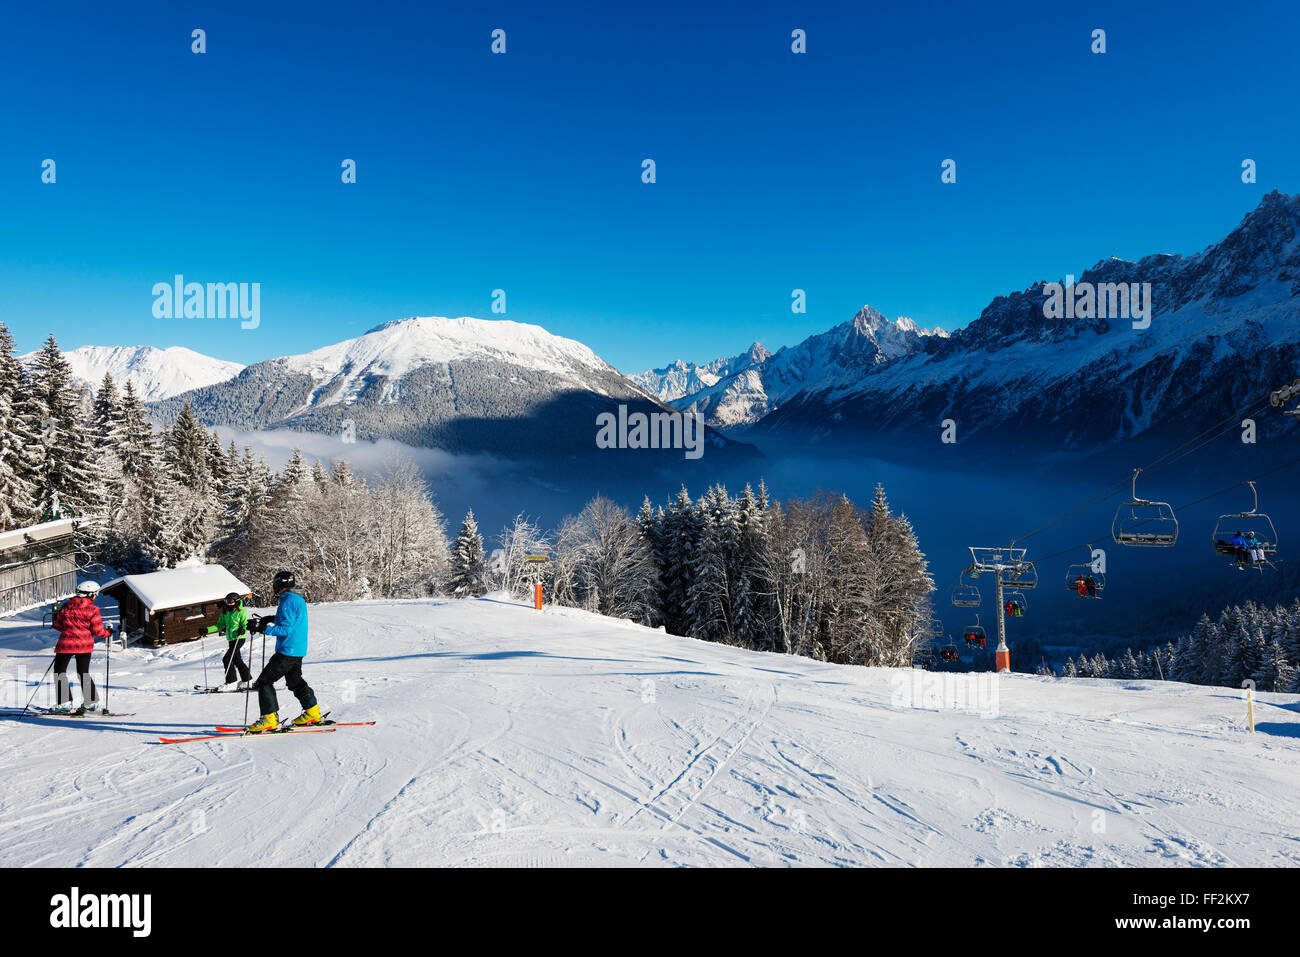 RMes Houches ski resort, Chamonix VaRMRMey, Rhone ARMps, Haute Savoie, French ARMps, France, Europe - Stock Image